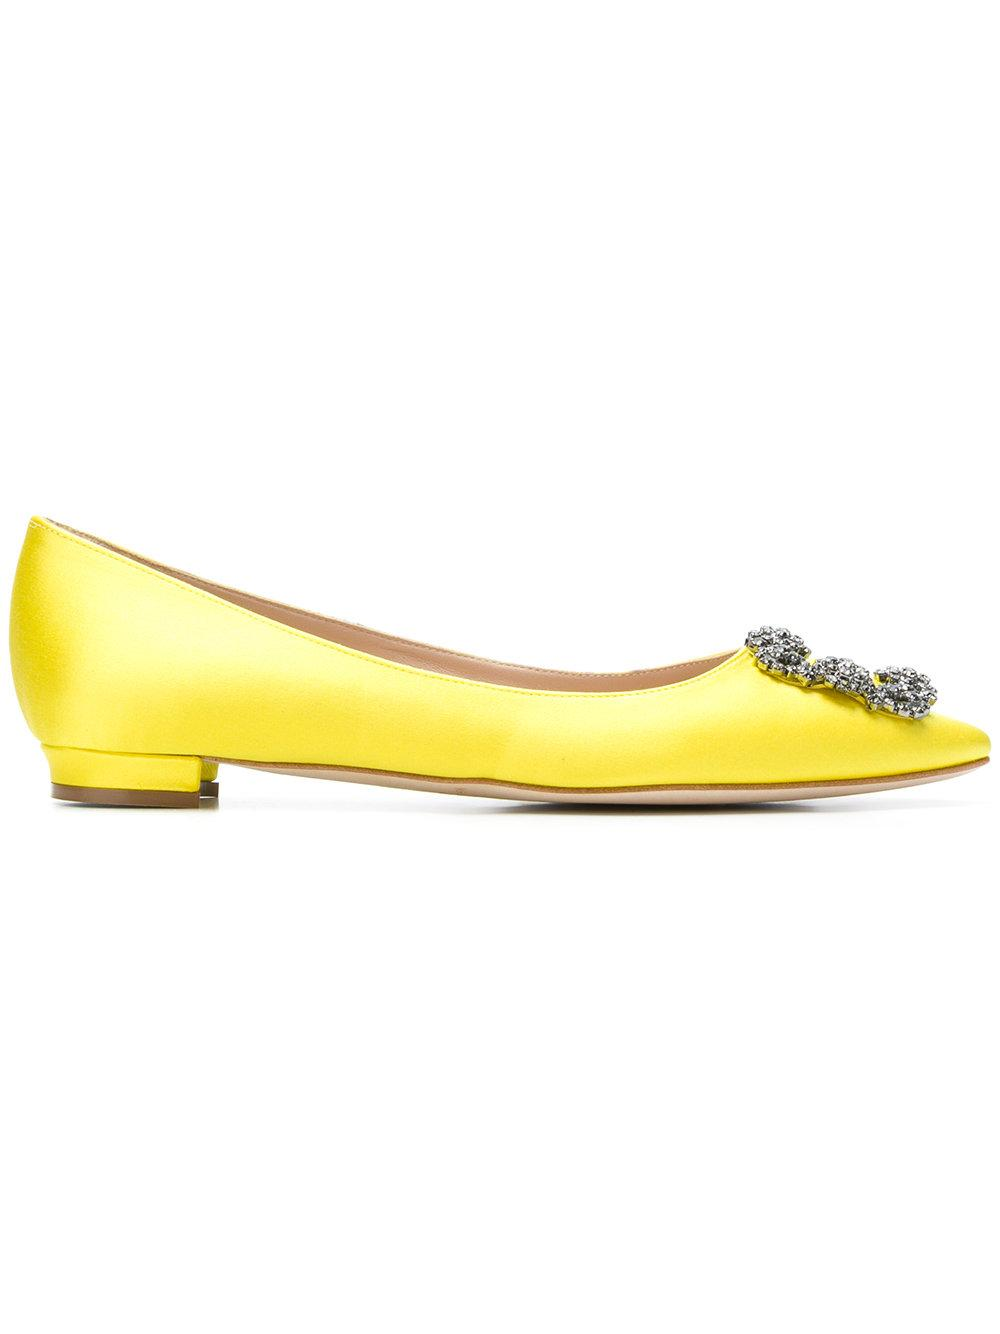 2b34be11ce396 Manolo Blahnik Hangisi Crystal-Buckle Satin Flats In Yellow | ModeSens